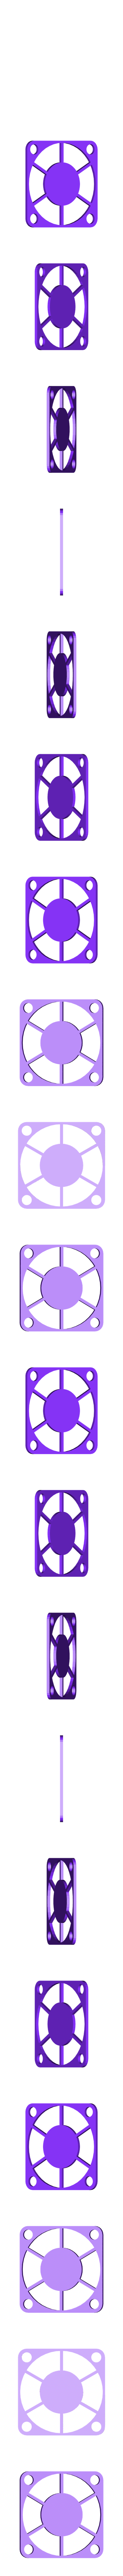 fan_guard.stl Download free STL file Ramps snap-in cover (2x30mm fans) • 3D printing template, dasaki